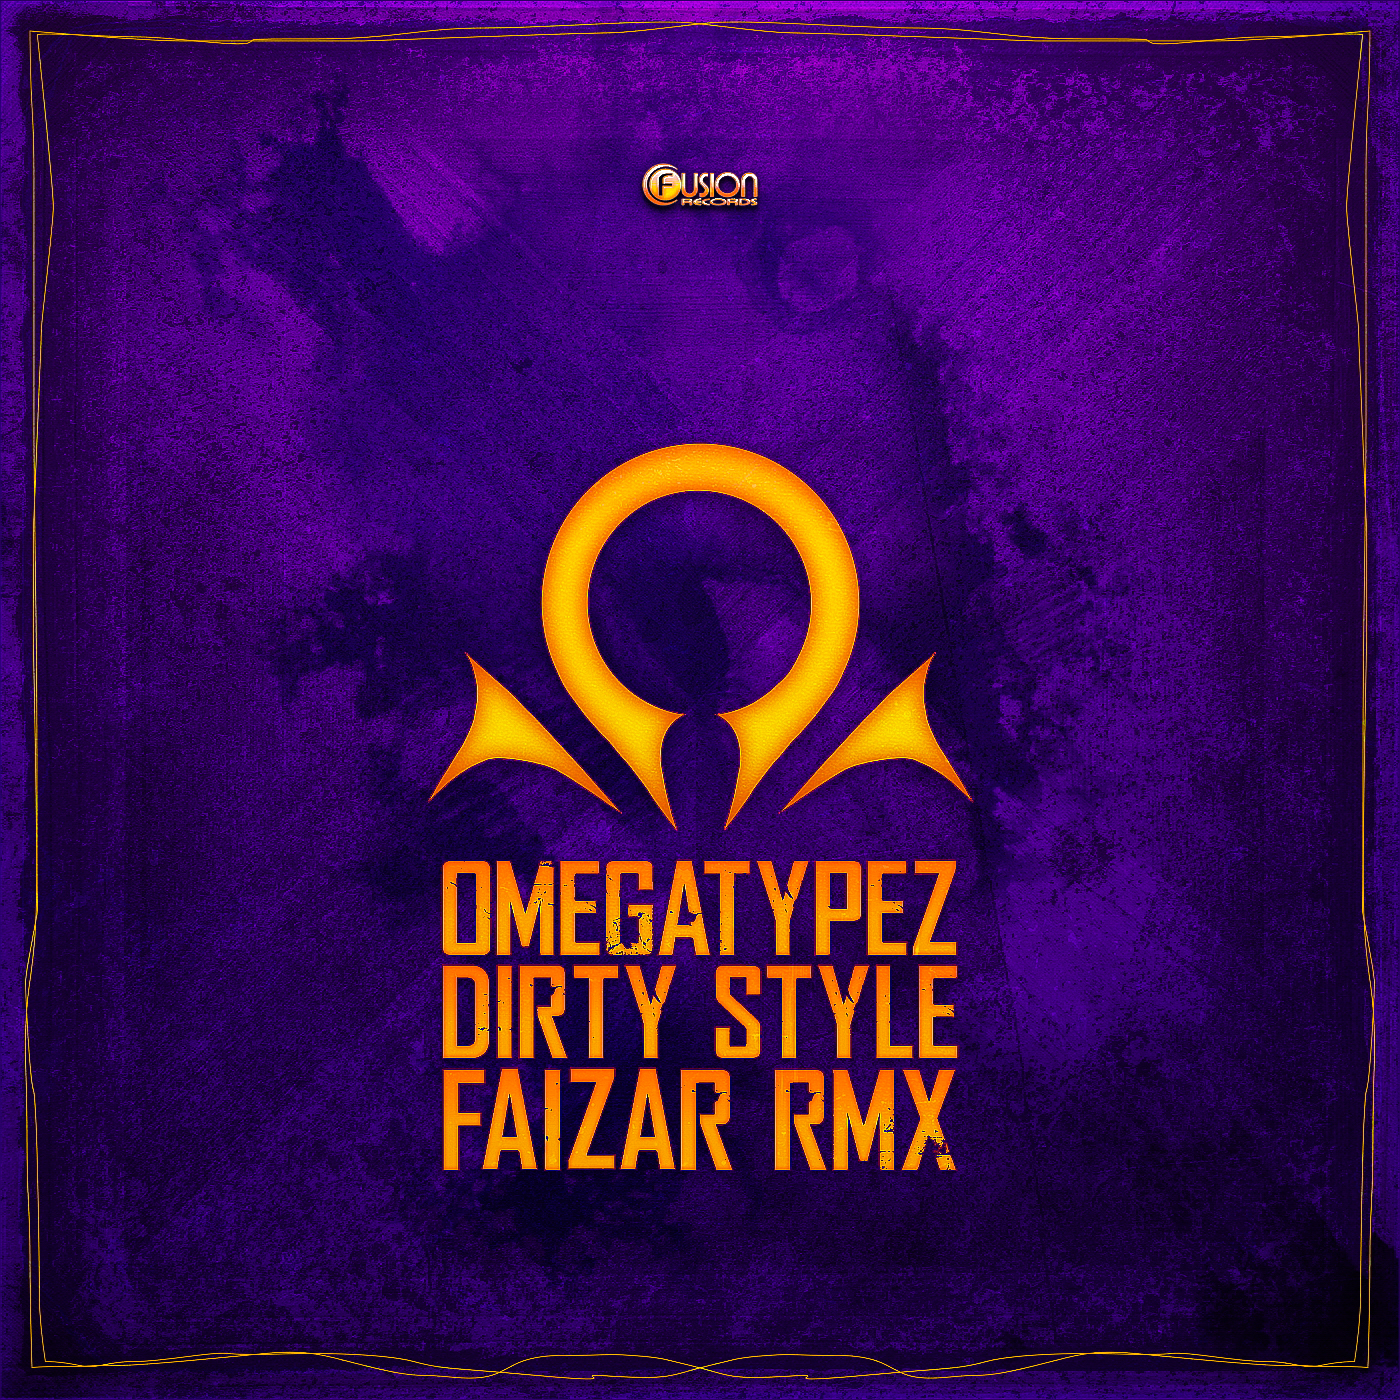 Omegatypez - Dirty Style (Faizar Remix) [FUSION RECORDS] FUSION358